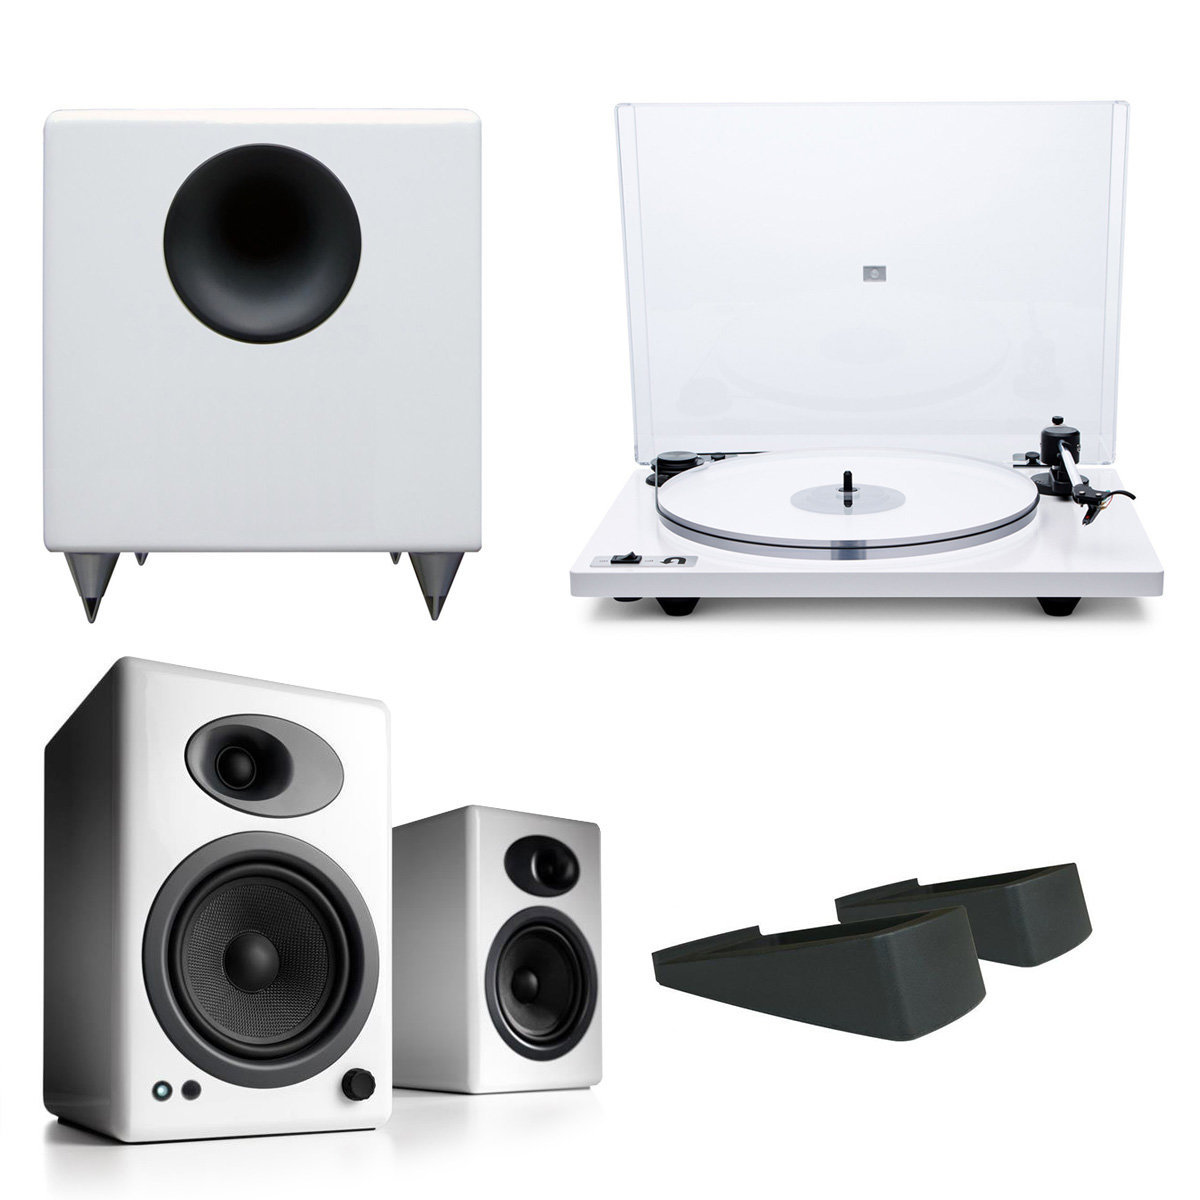 U Turn Audio Orbit Plus Turntable With Built In Preamplifier White